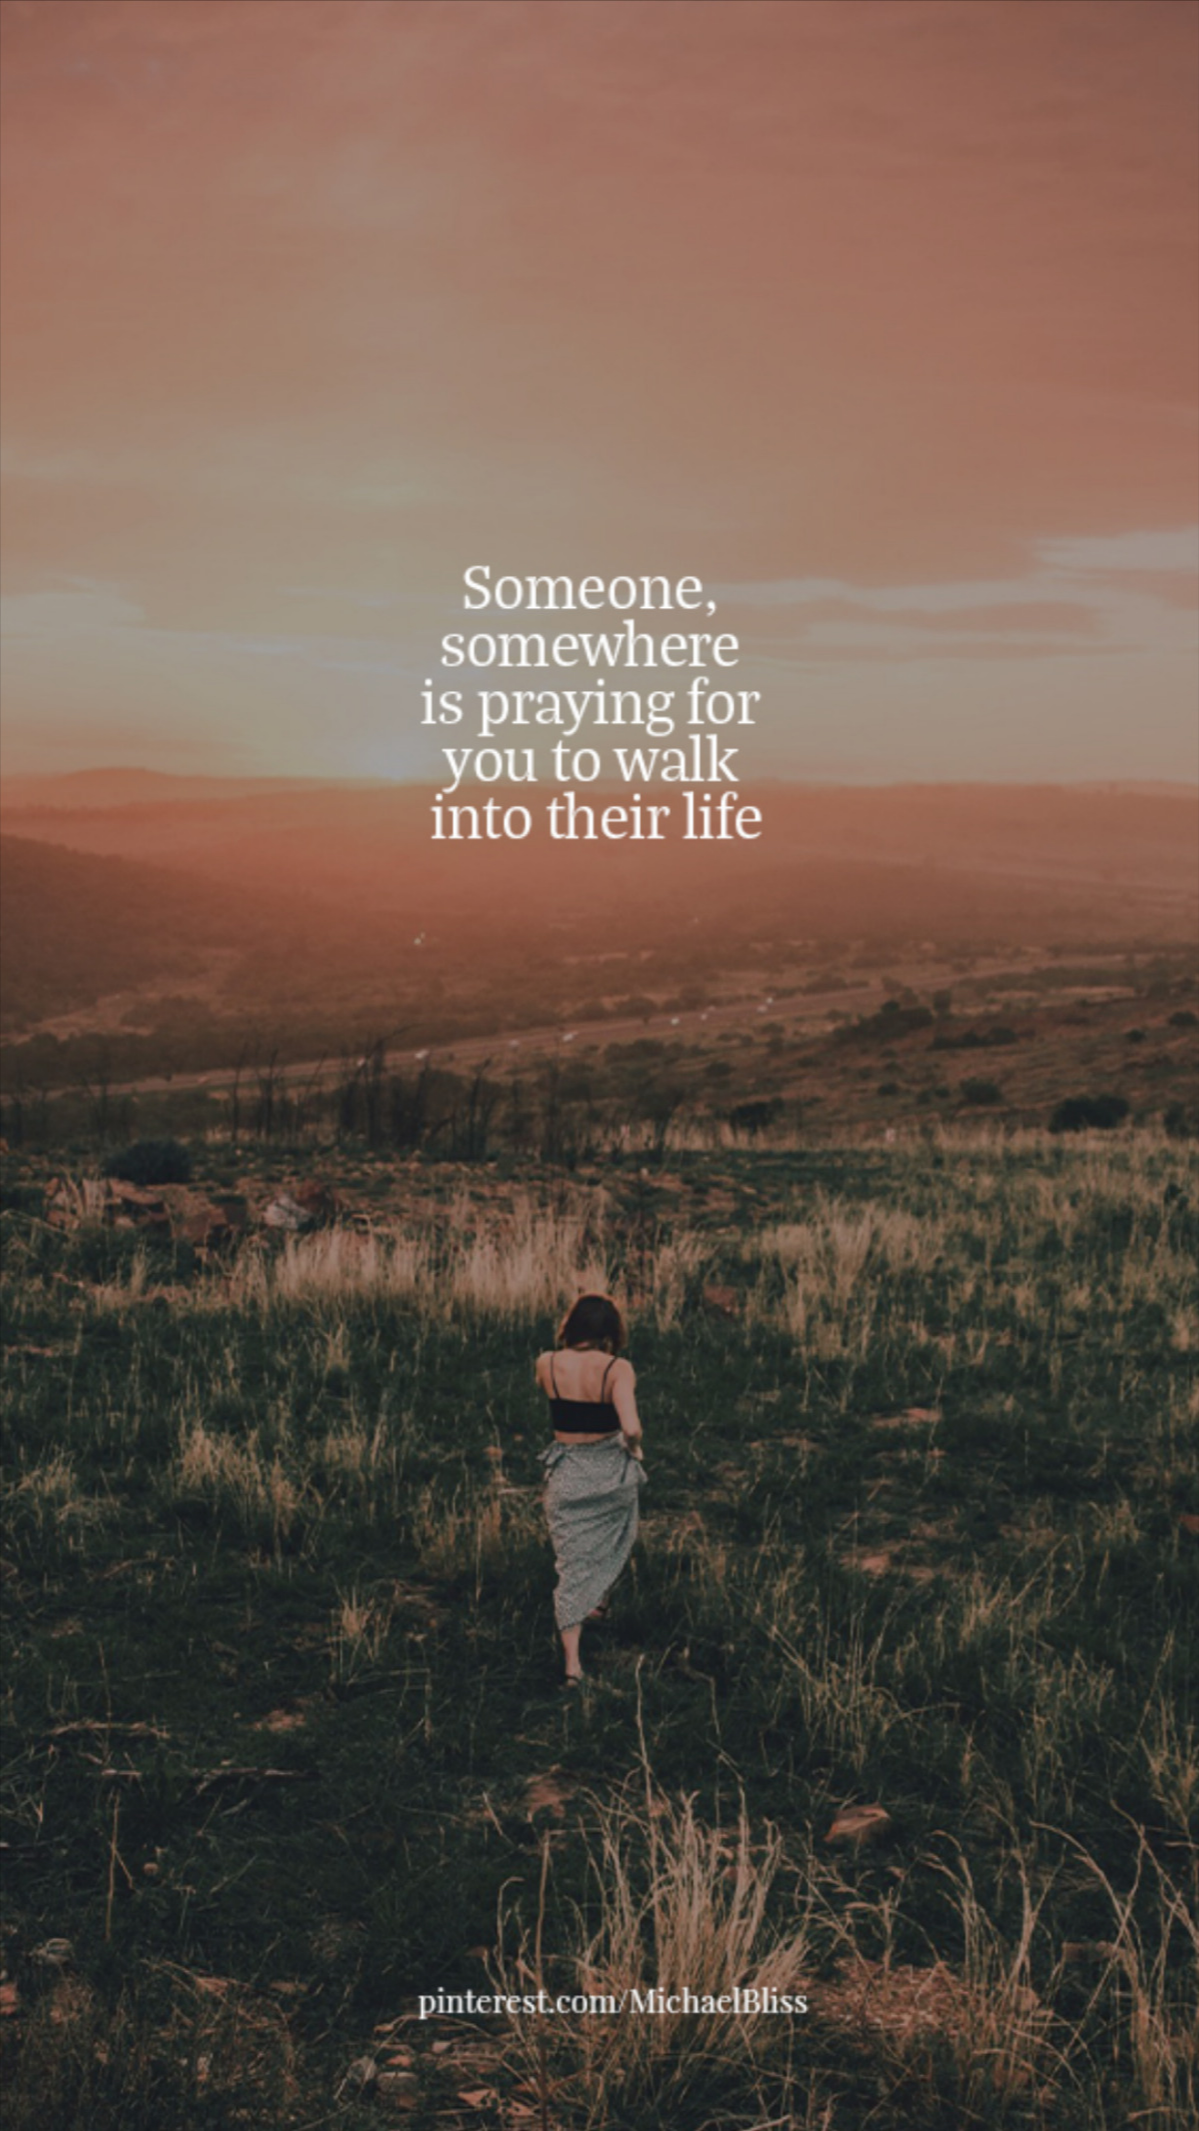 Someone, somewhere is praying for you to walk into their life.